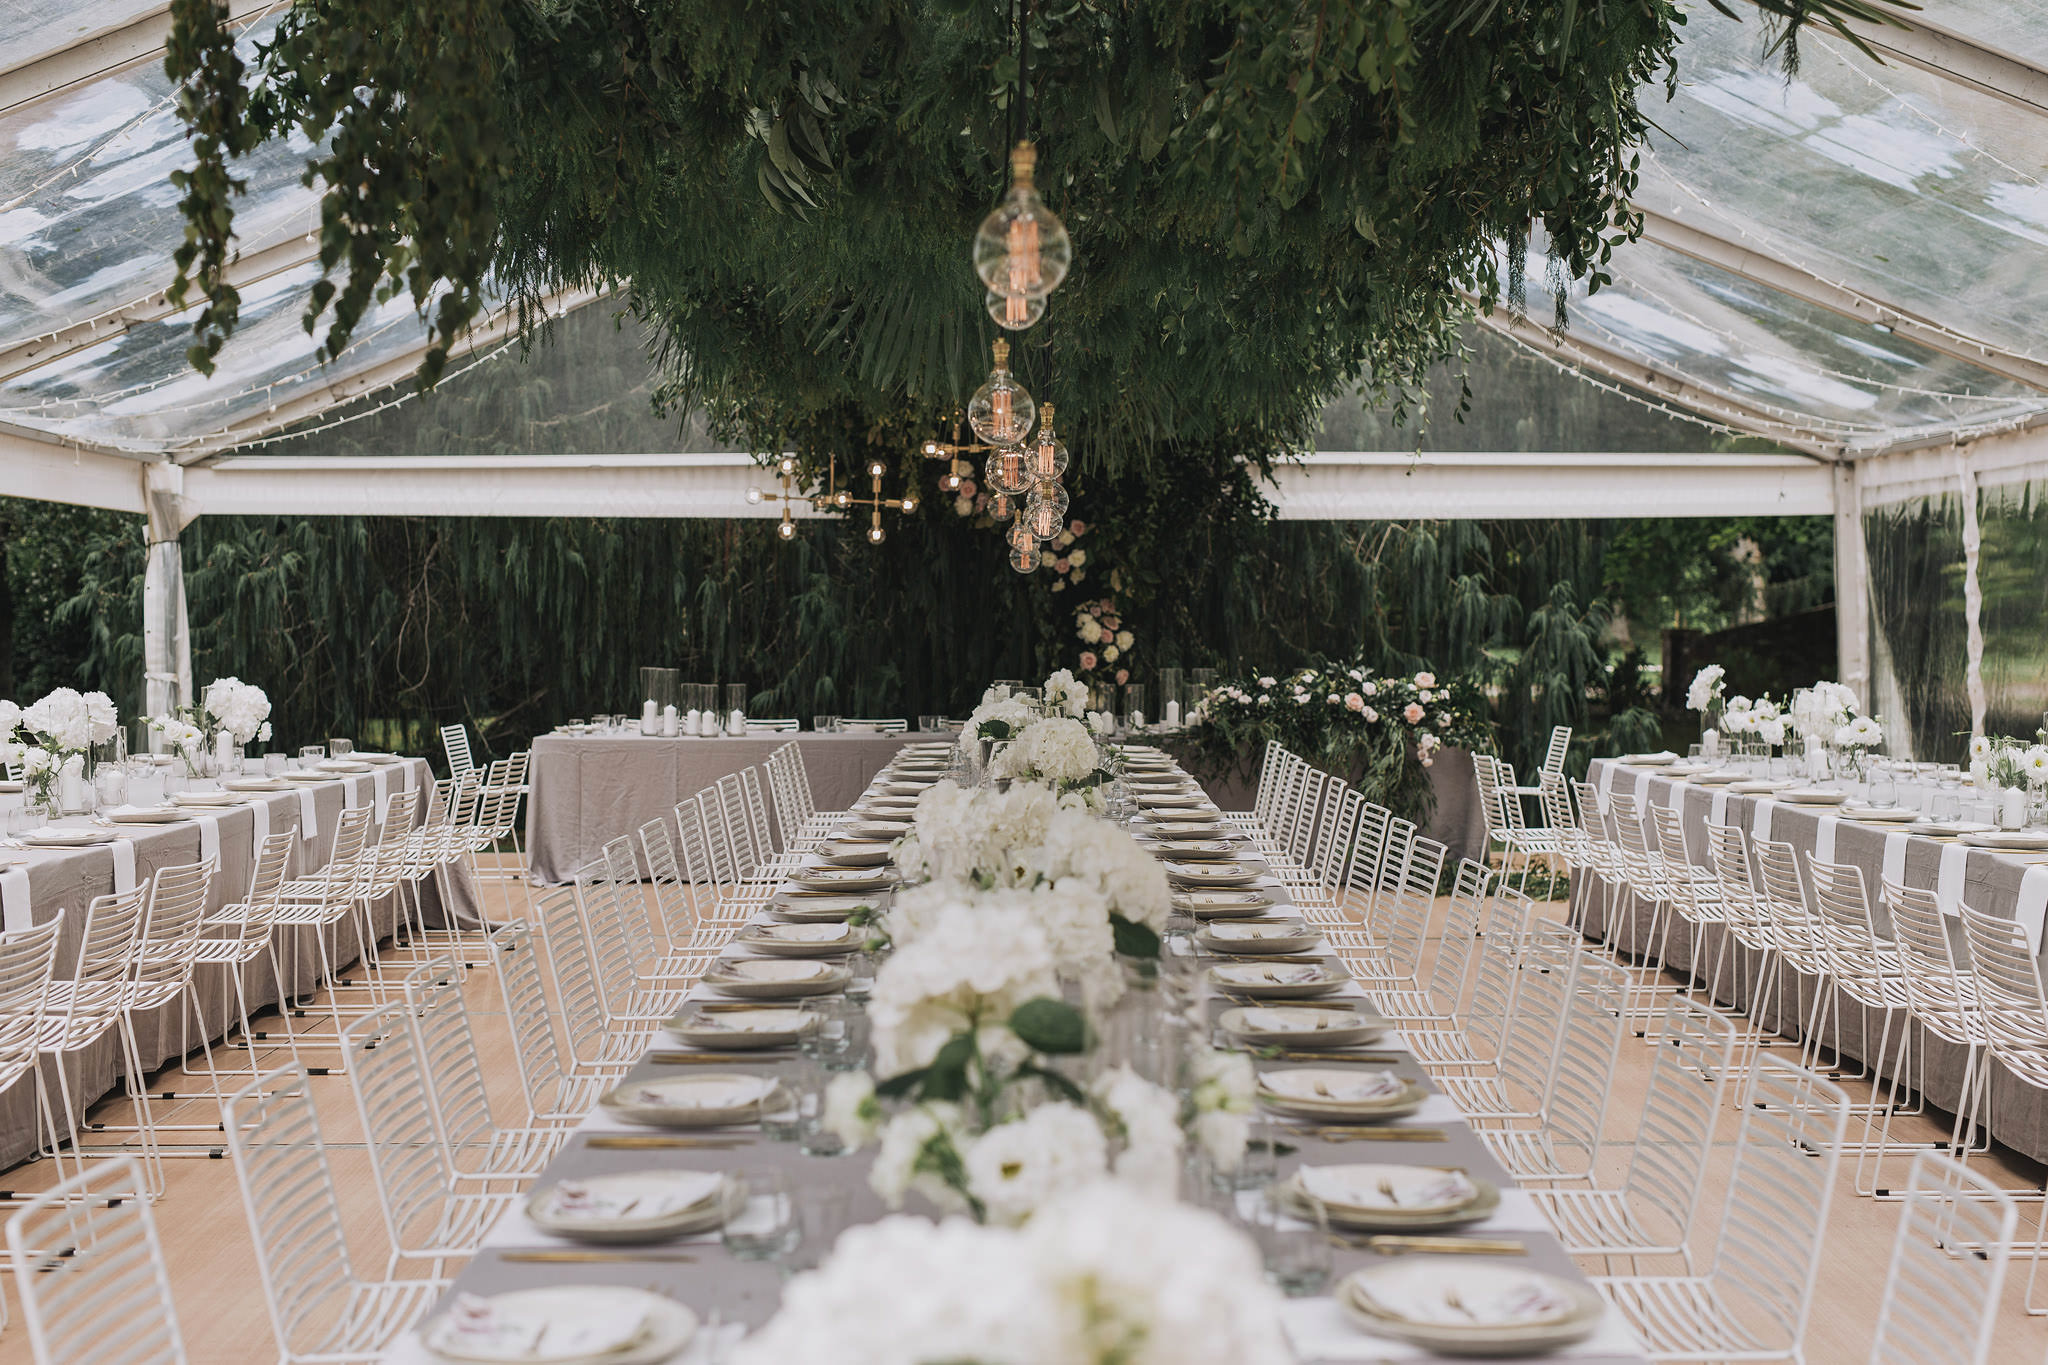 On My Hand wedding flowers - real wedding portfolio - Abbey and Ash - floral styling with hanging flowers and table runners in wedding reception marquee